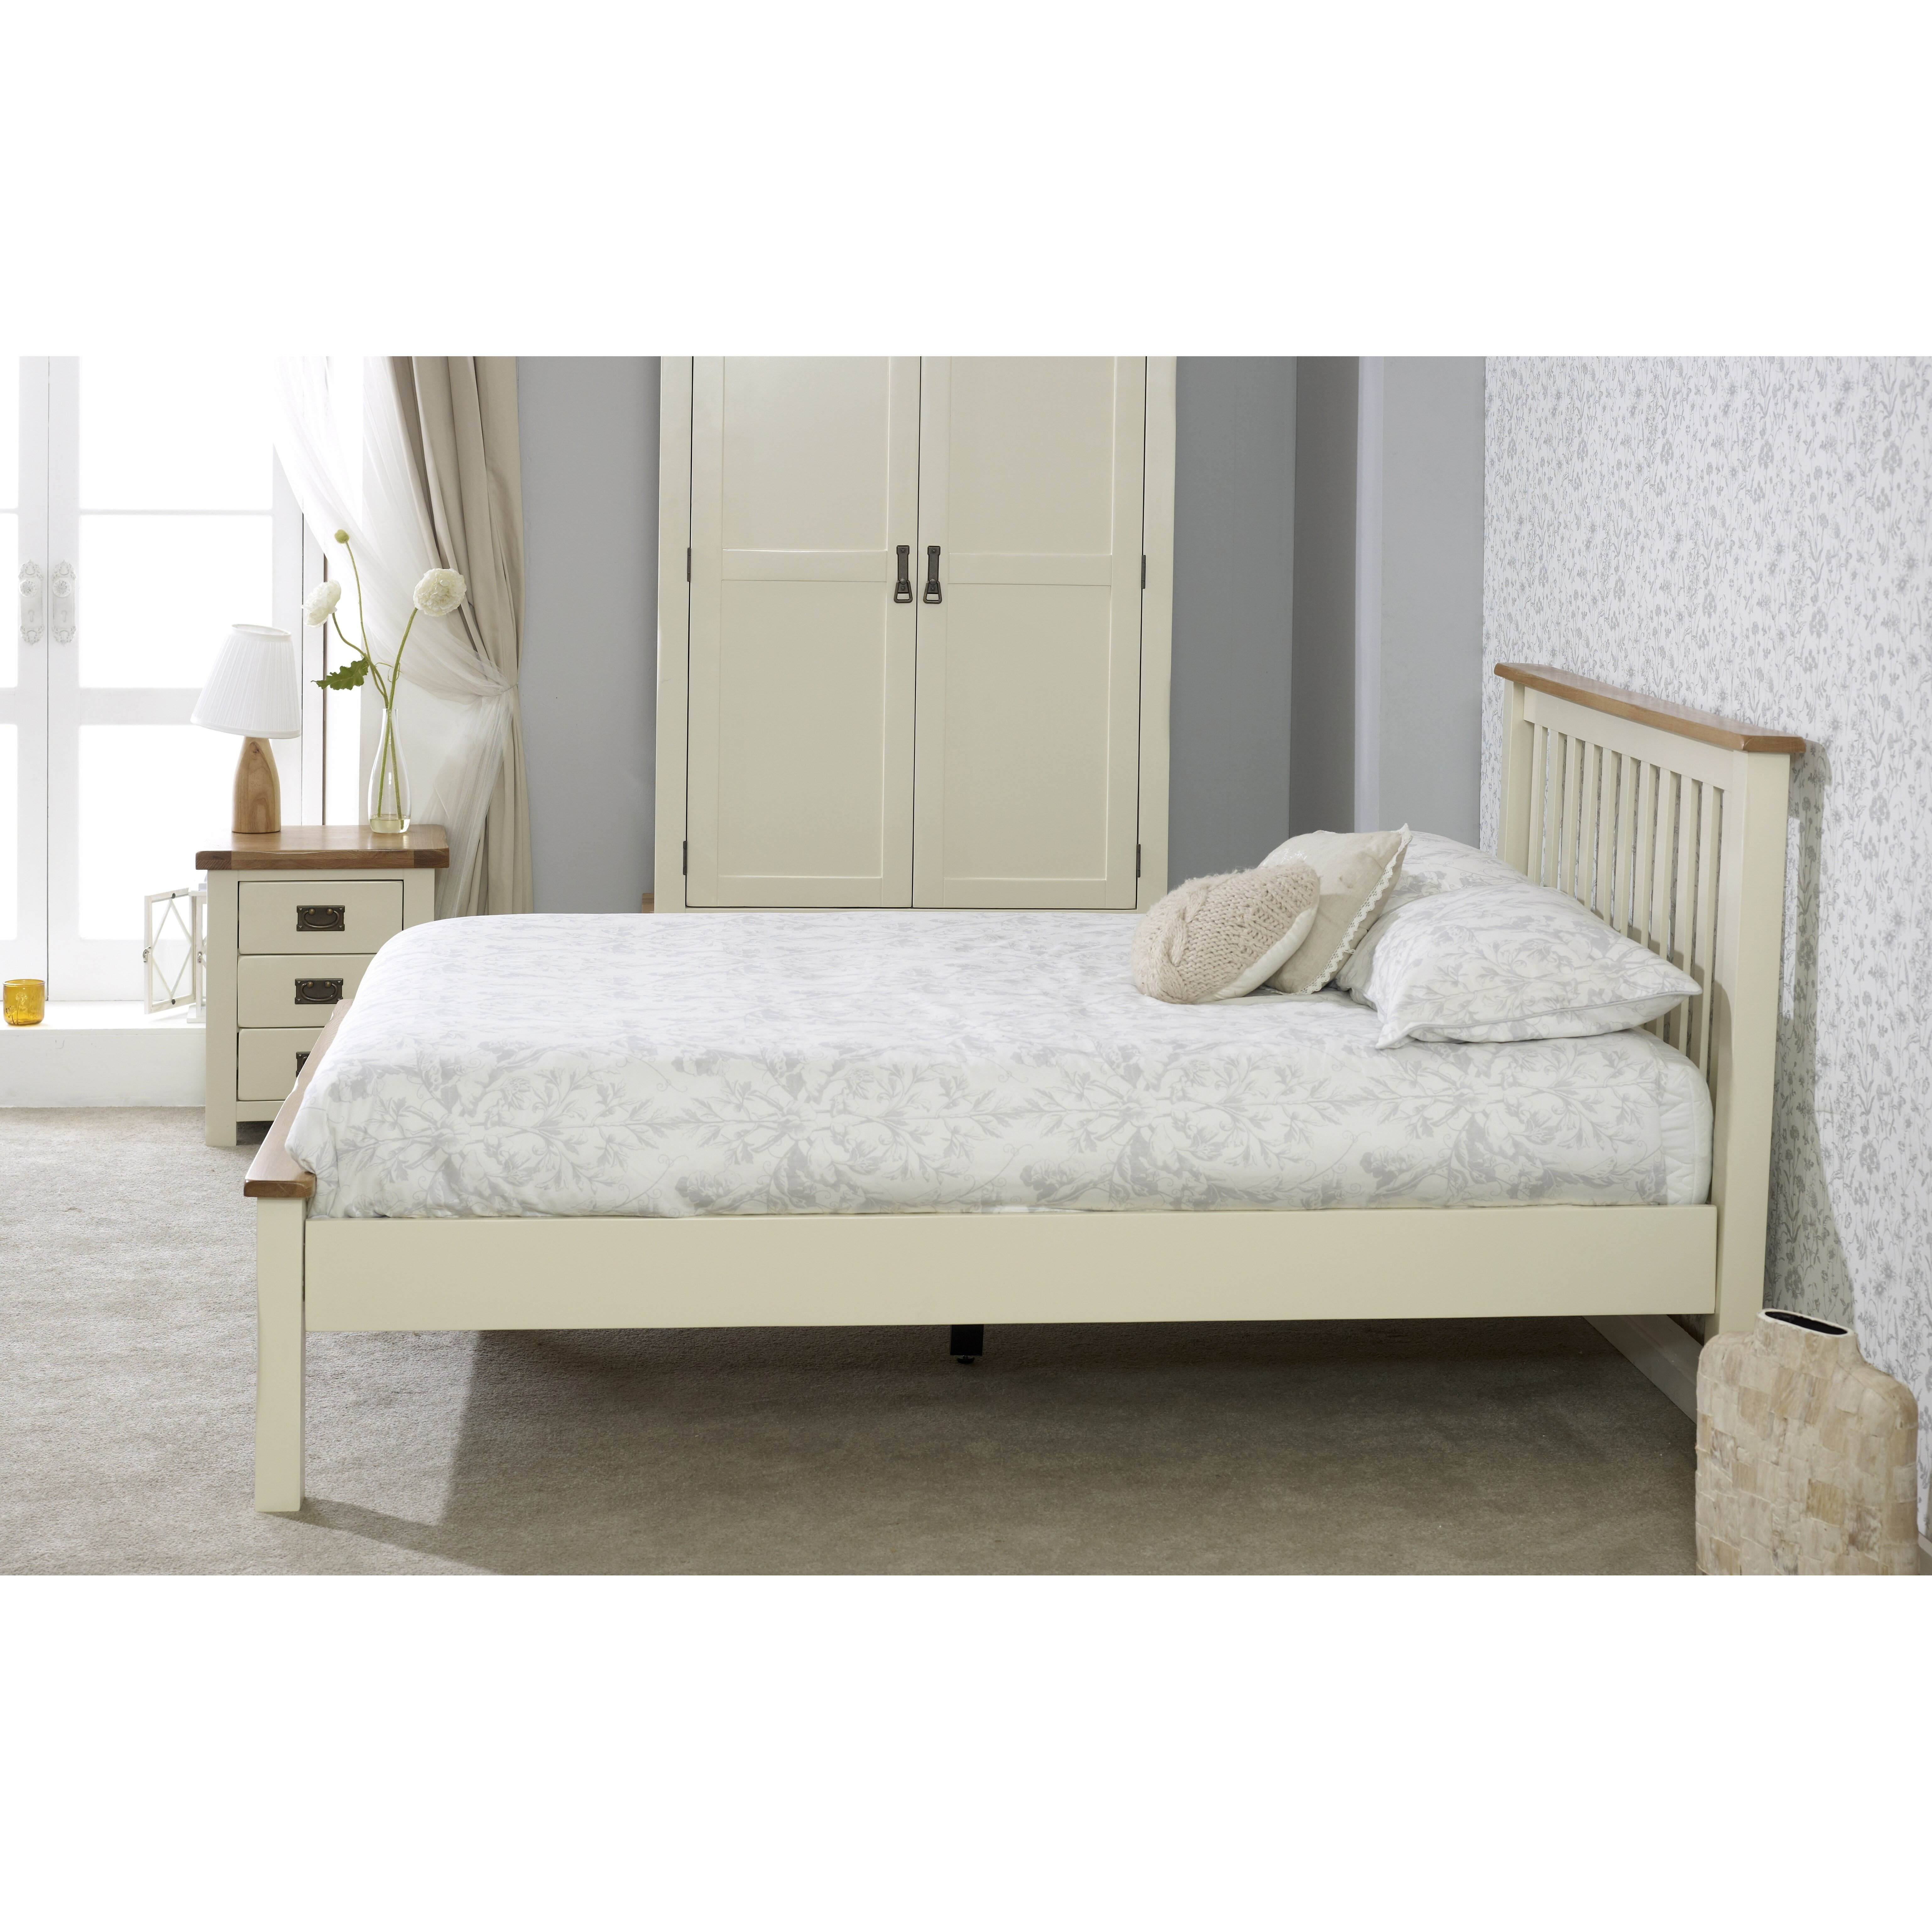 Birlea new hampshire low end bed frame wayfair uk for New bed frame